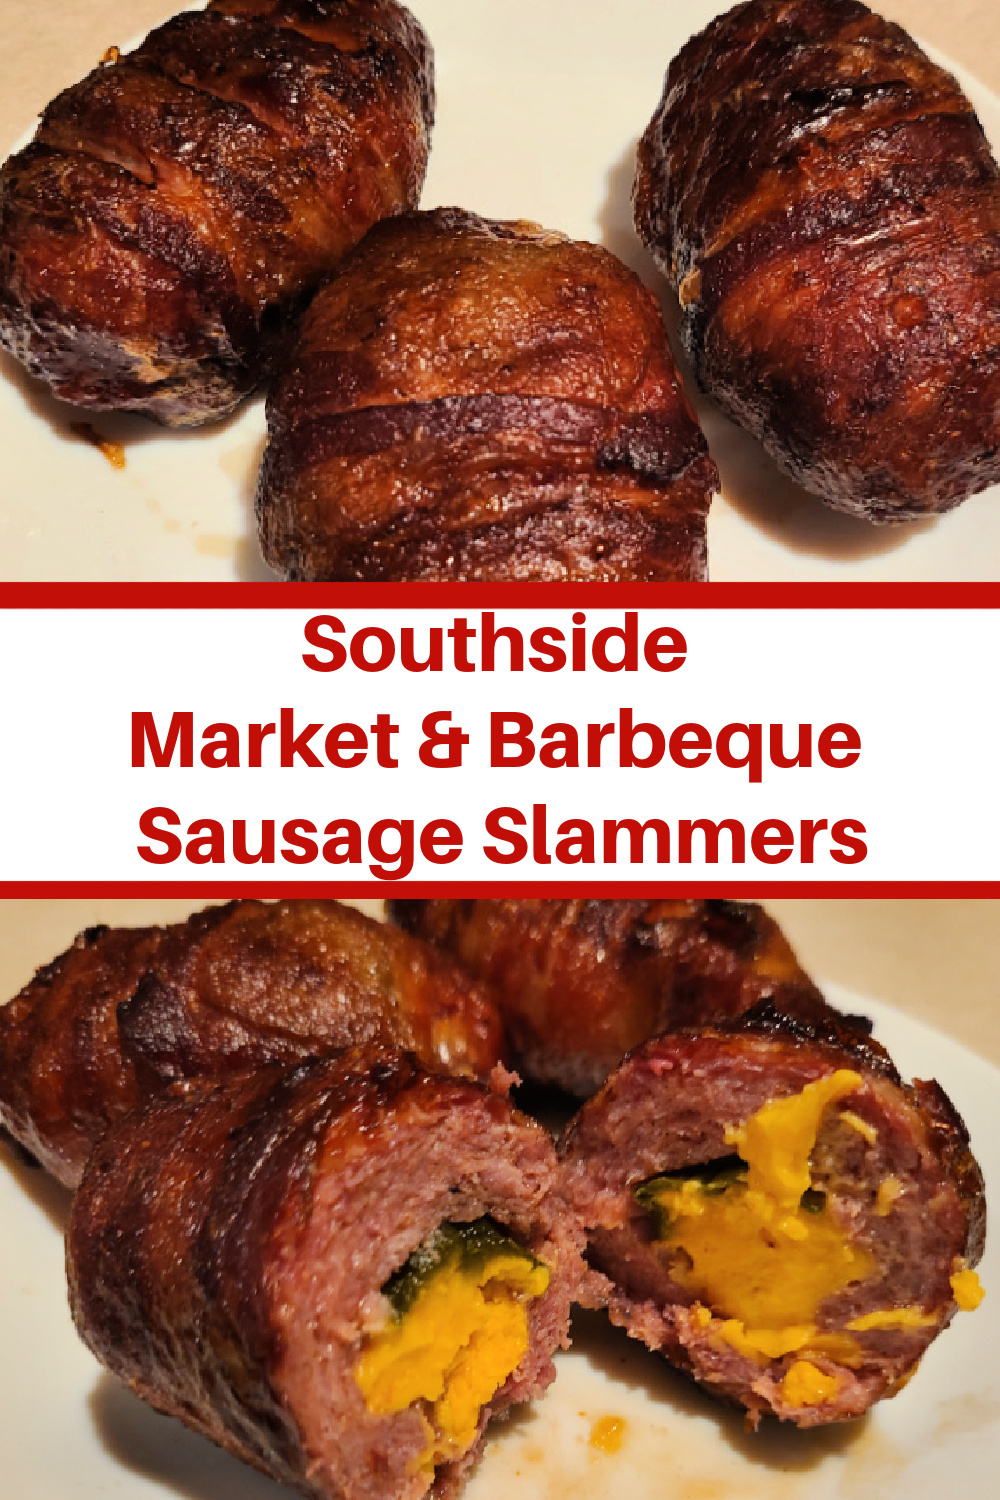 Southside Market & Barbeque Sausage Slammers! Perfect For Tailgating